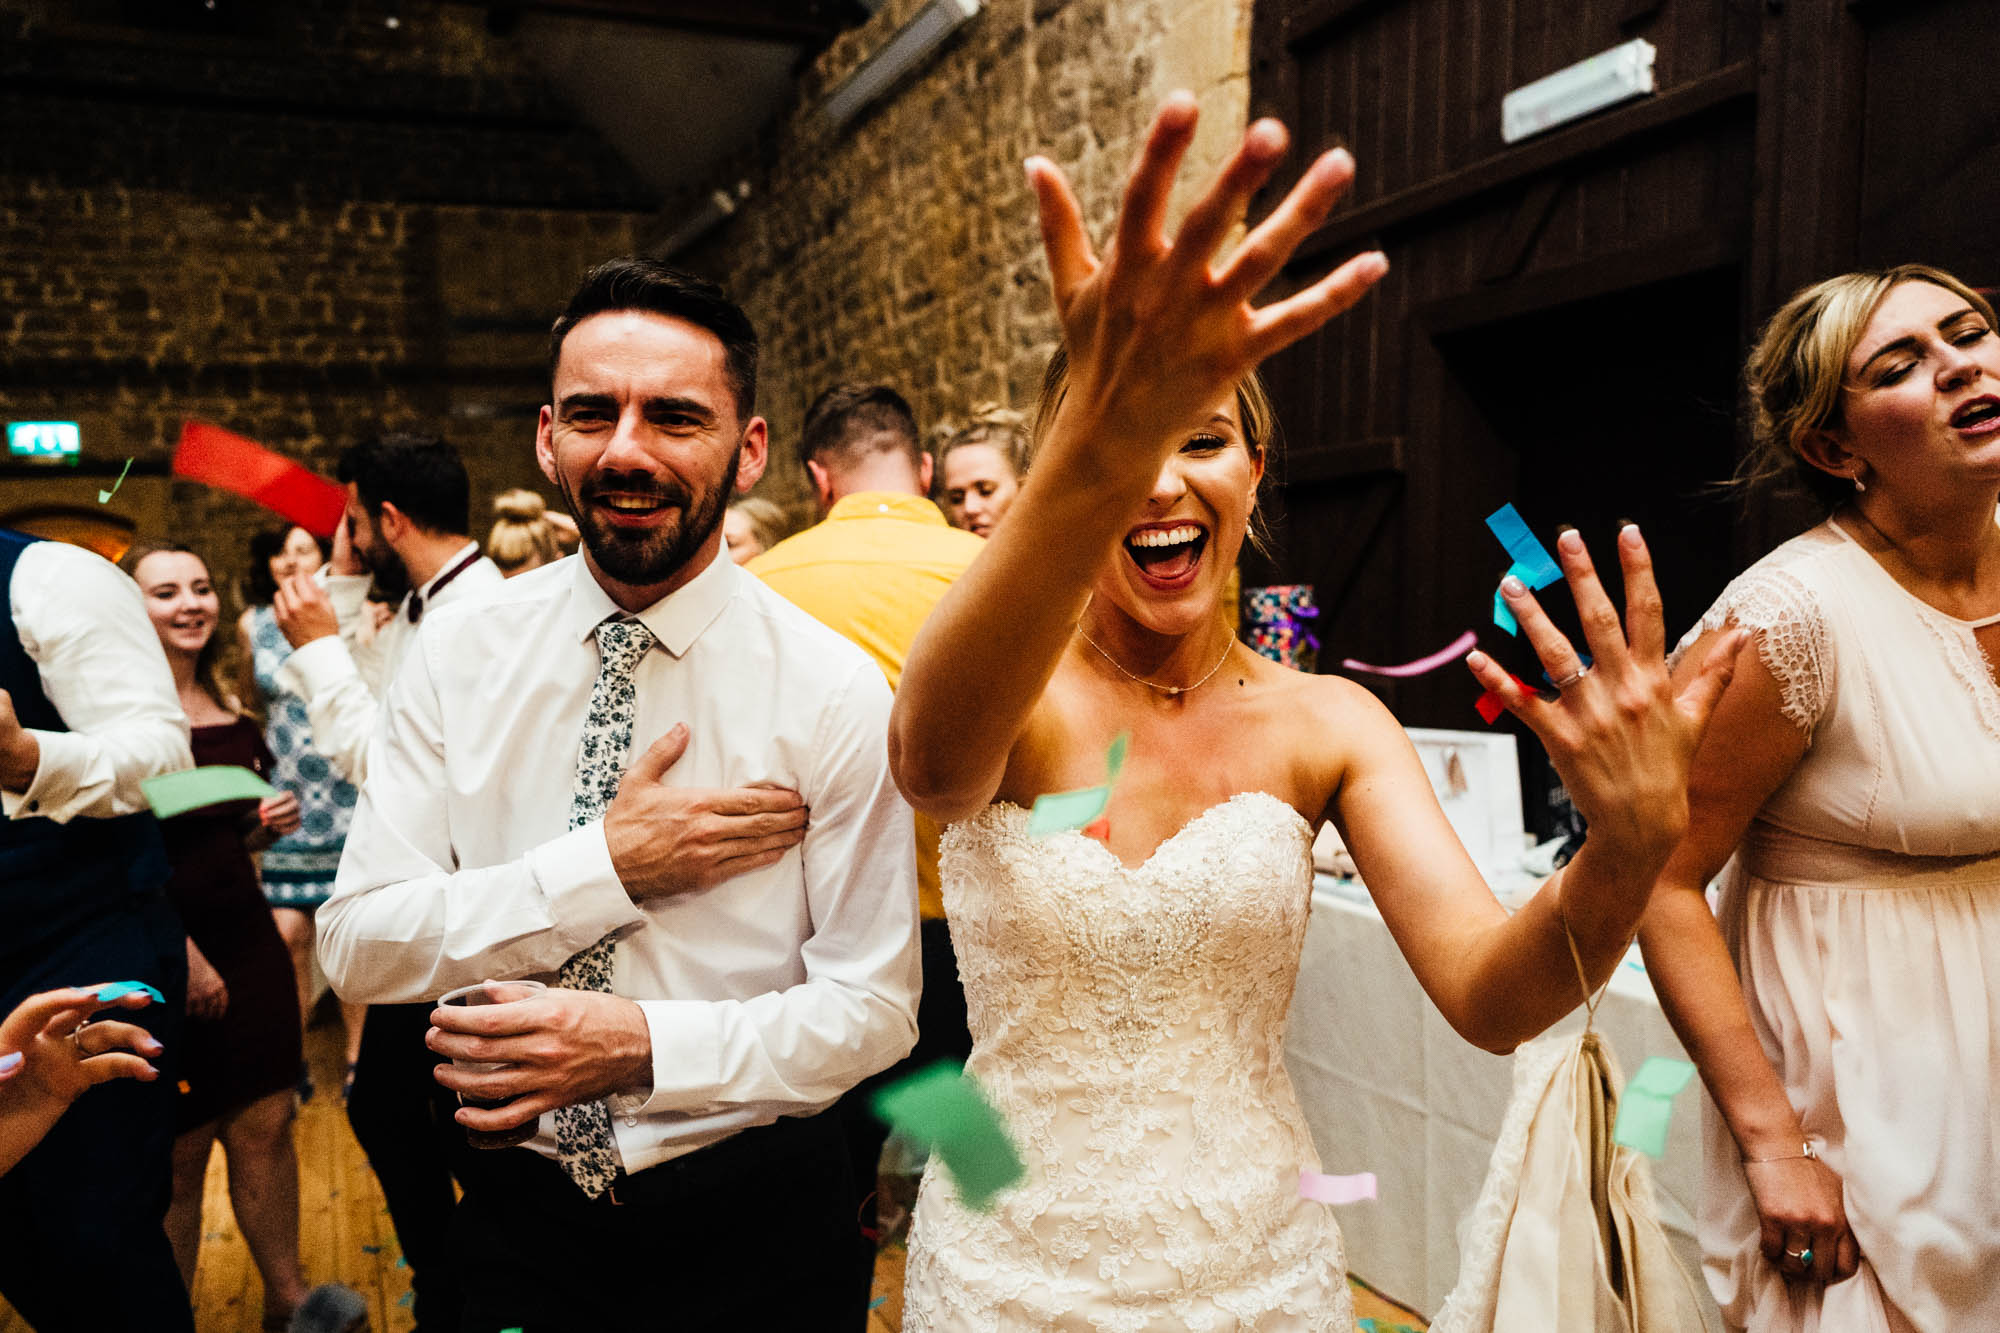 wedding-at-the-barns-at-hunsbury-hill-100